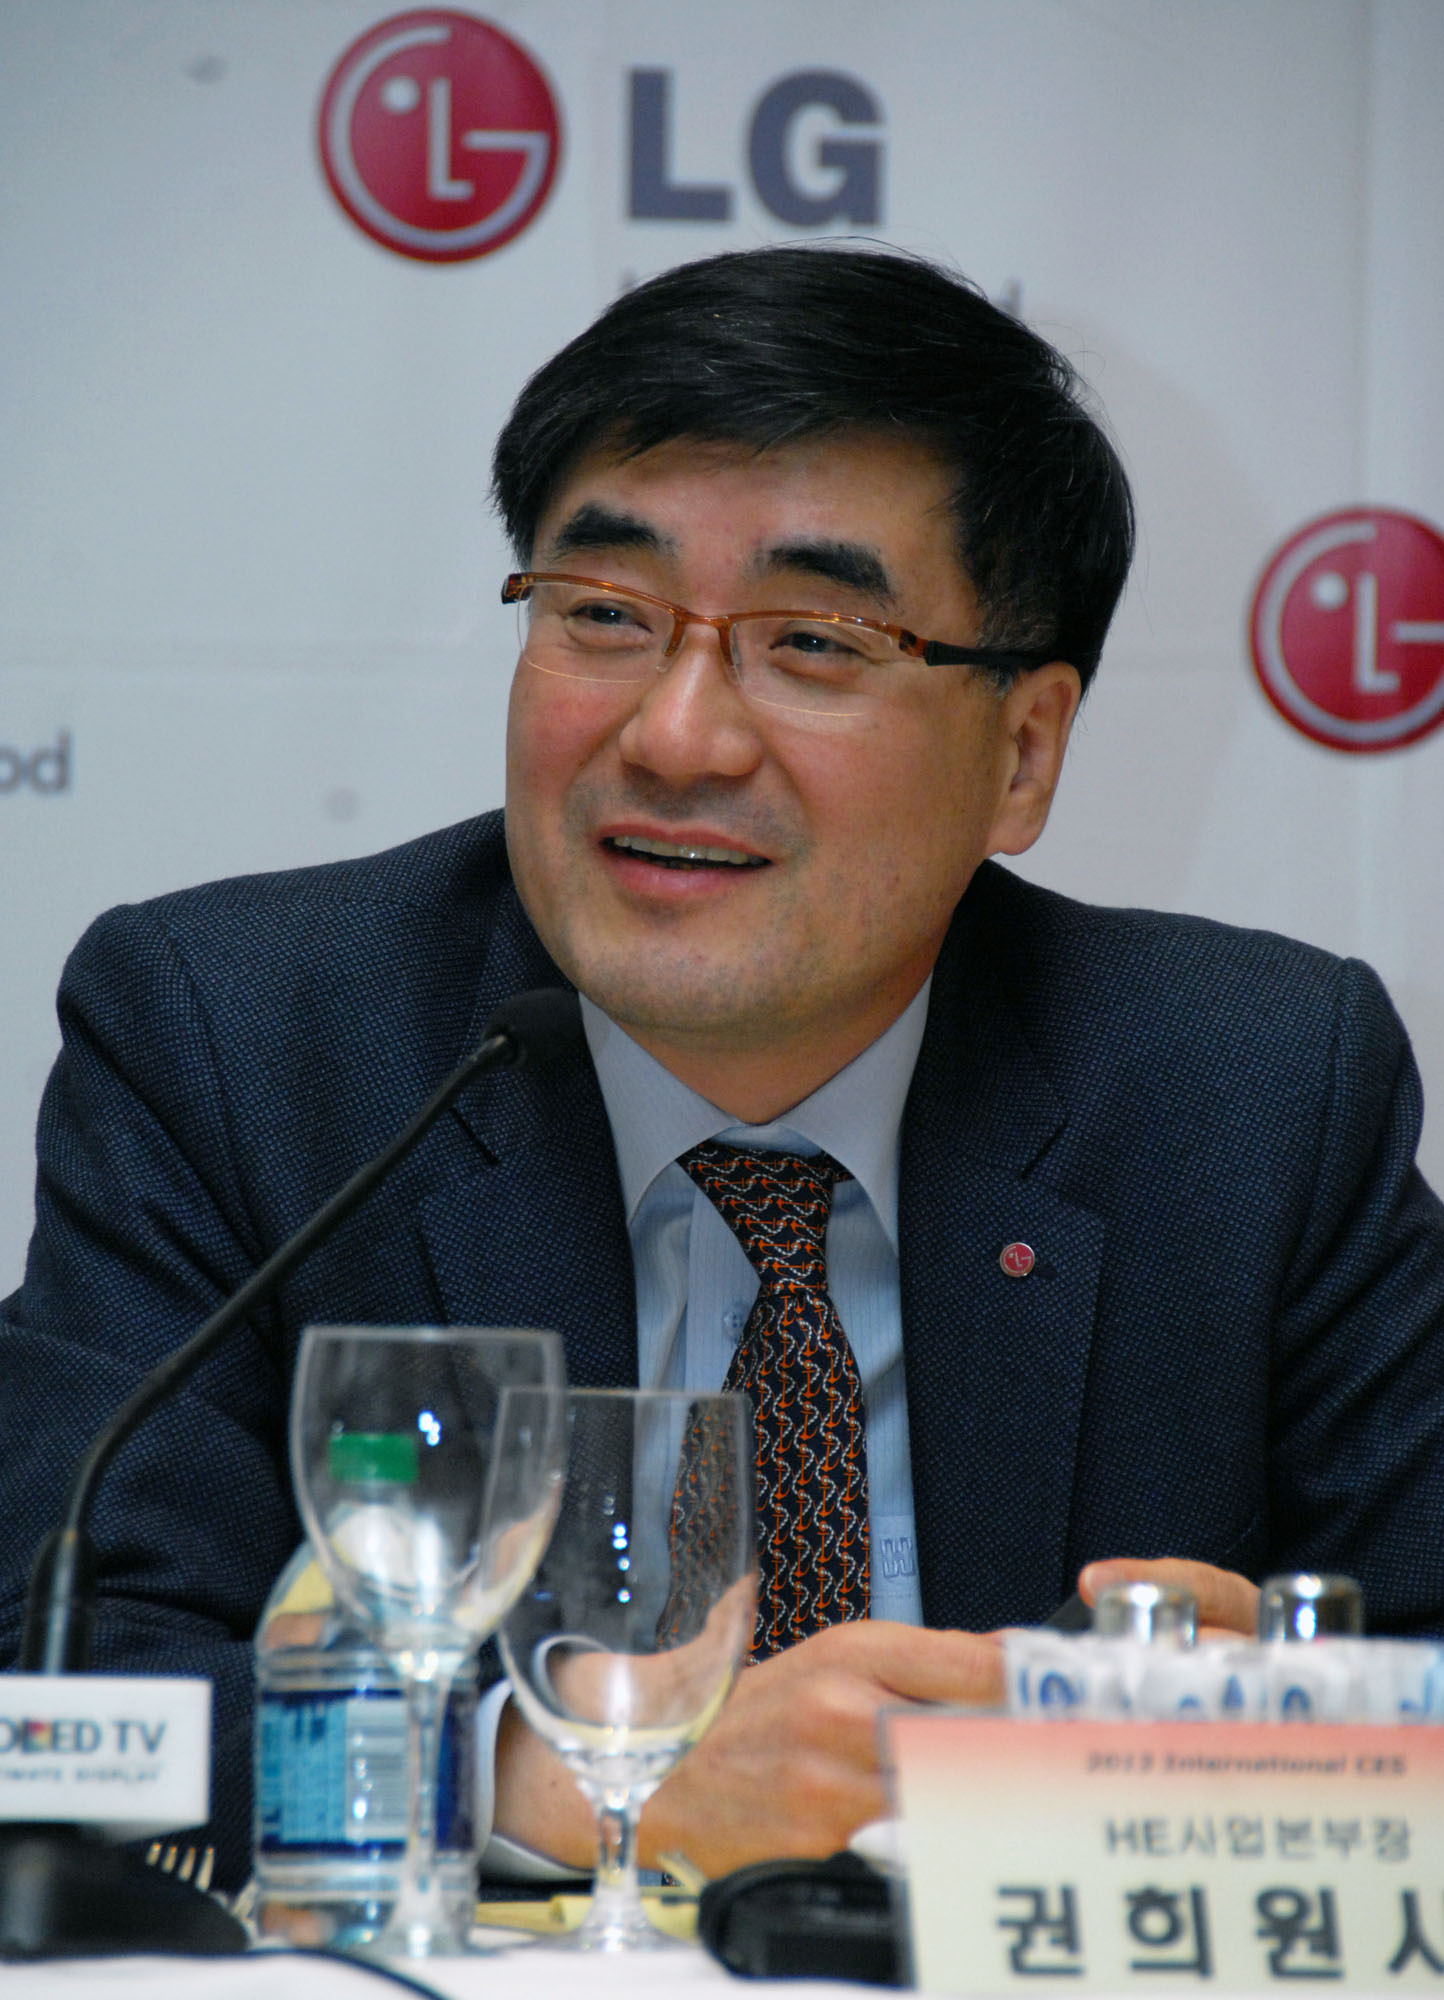 Havis Kwon, president and CEO of the LG Electronics Home Entertainment Company speaking at CES 2013